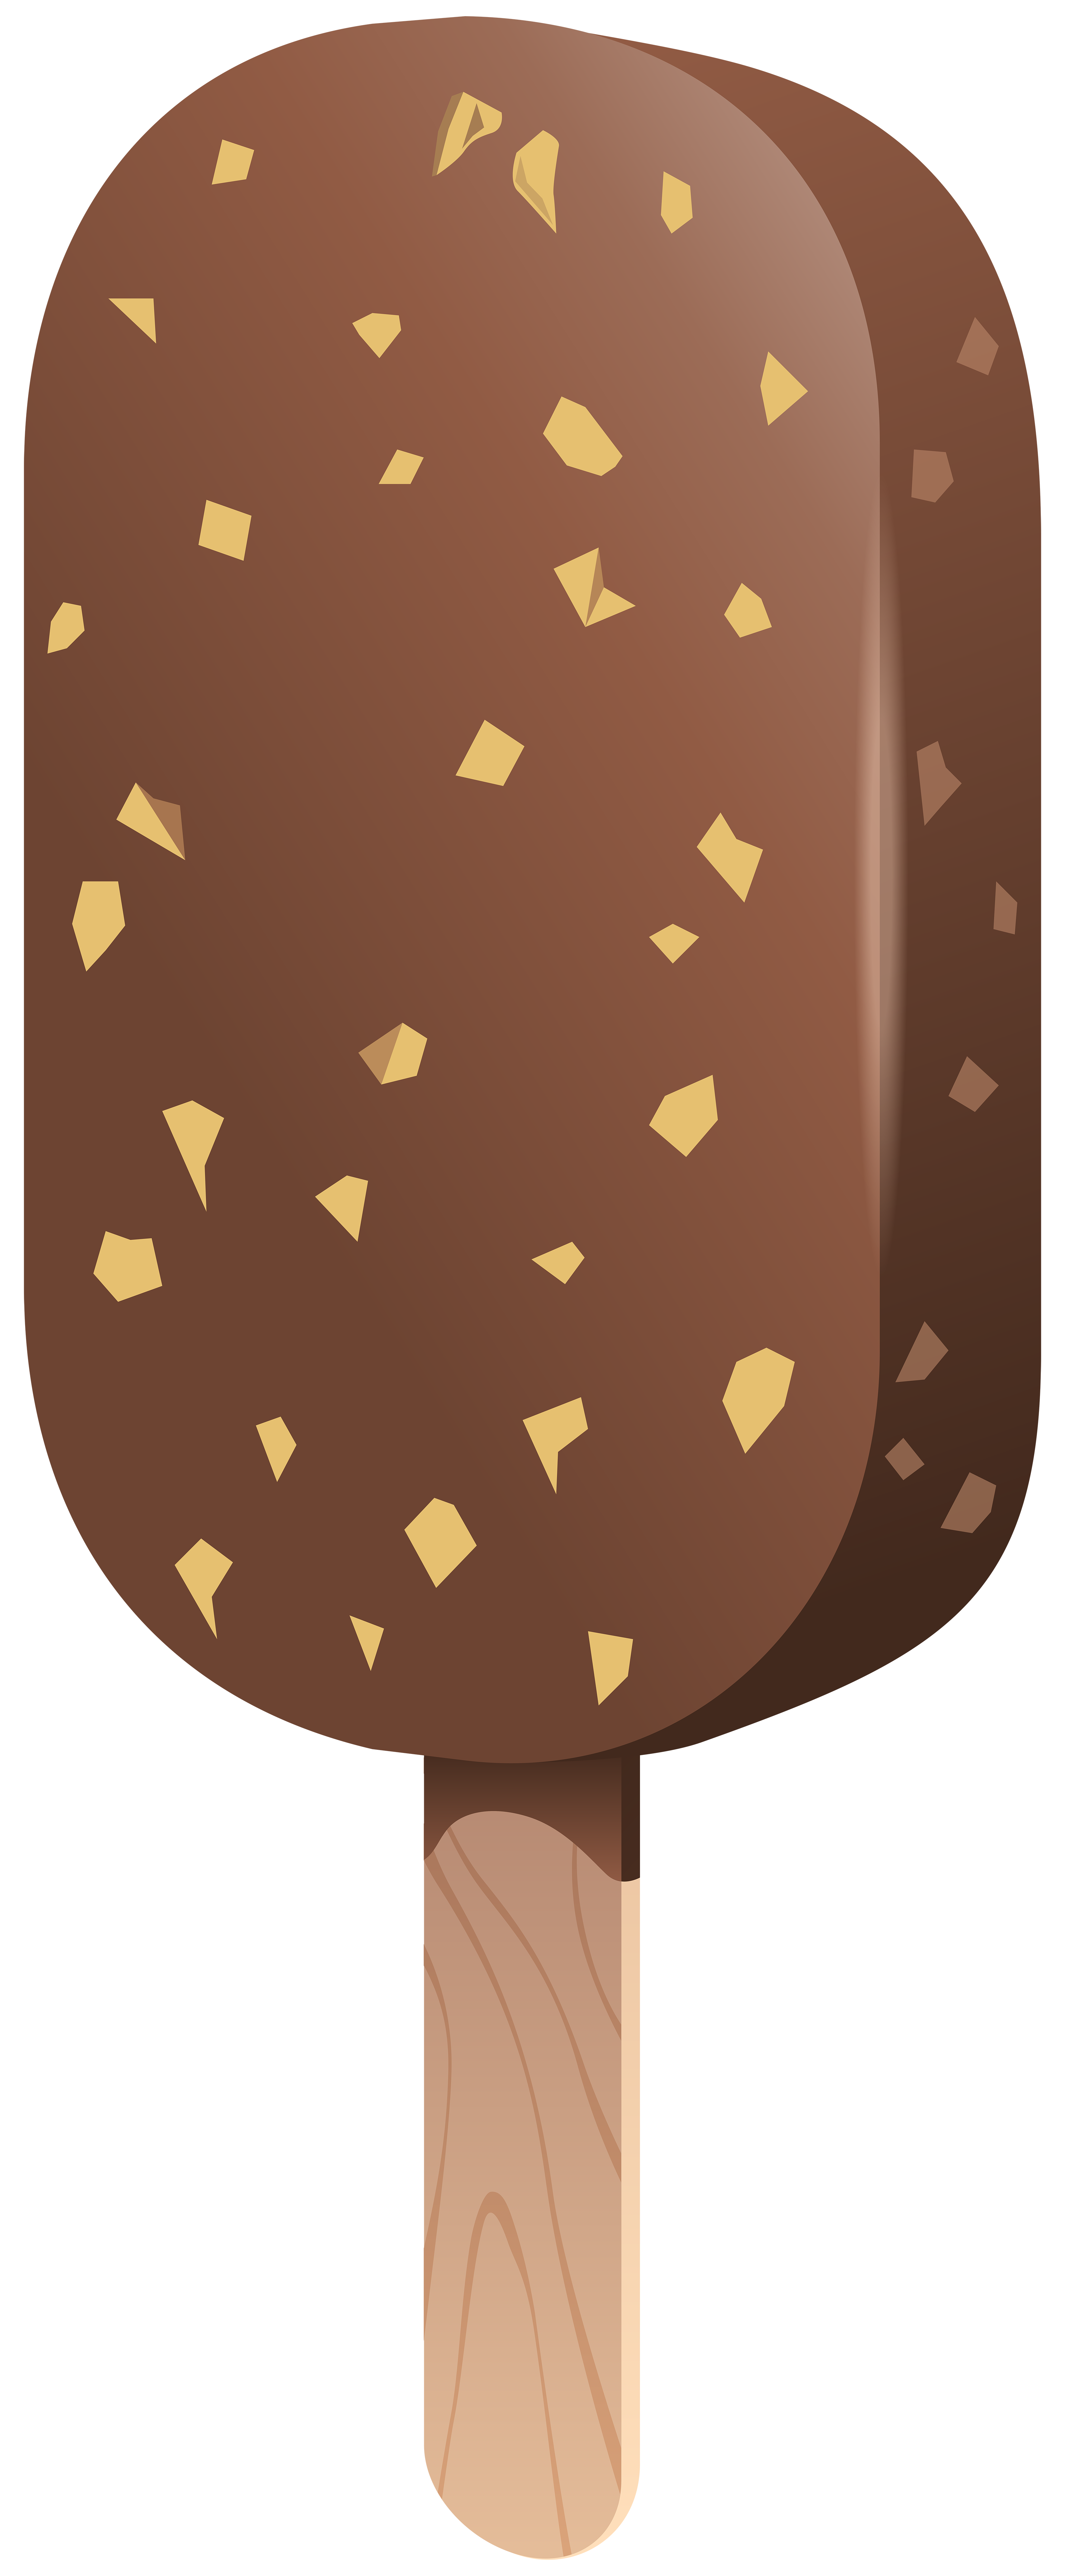 Ice Cream clipart brown Stick Yopriceville size full PNG